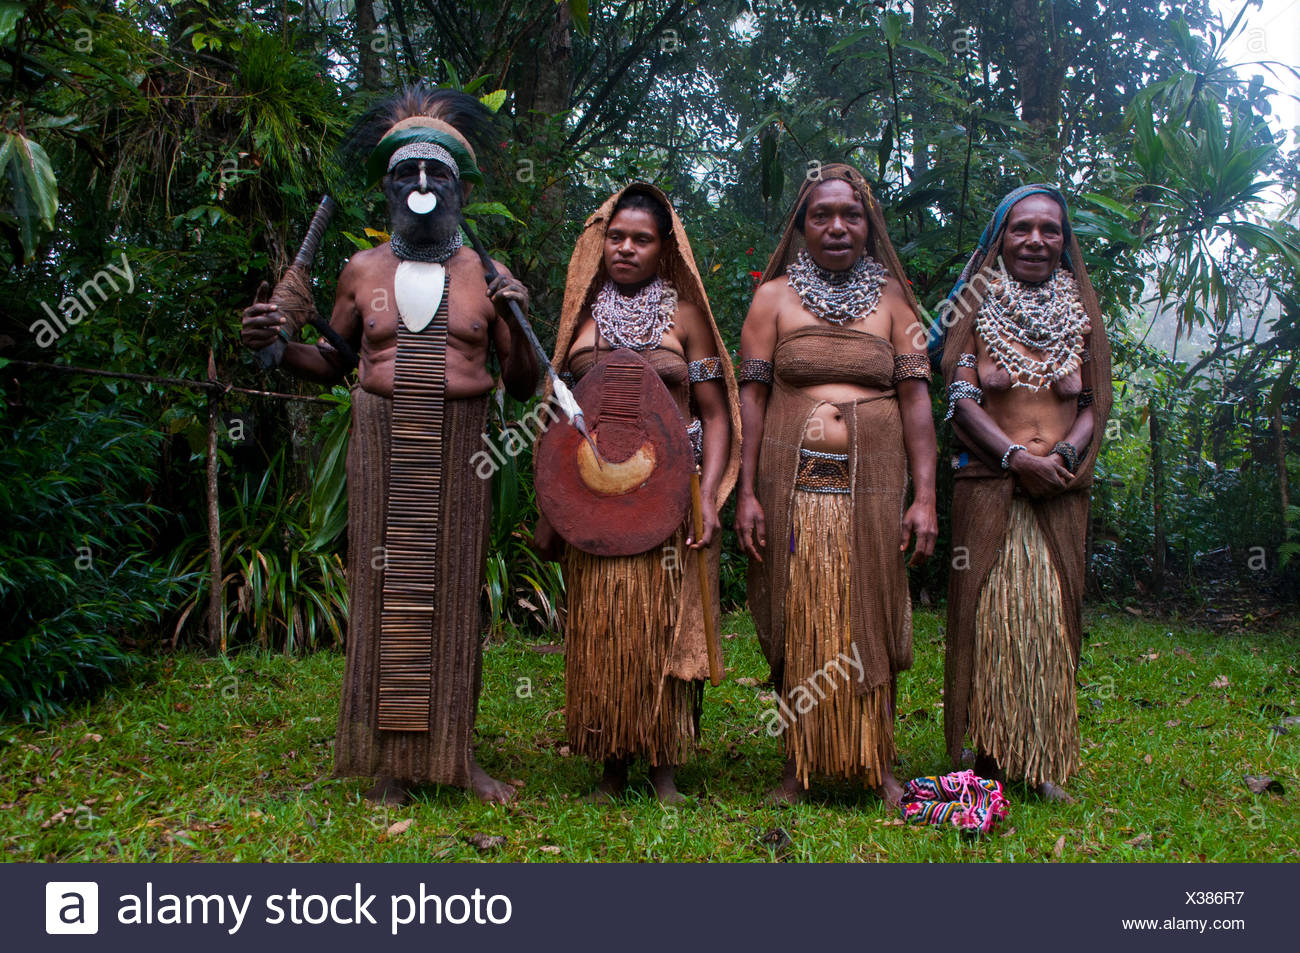 Tribal chief and three women wearing traditional dresses, Highlands Region, Papua New Guinea - Stock Image